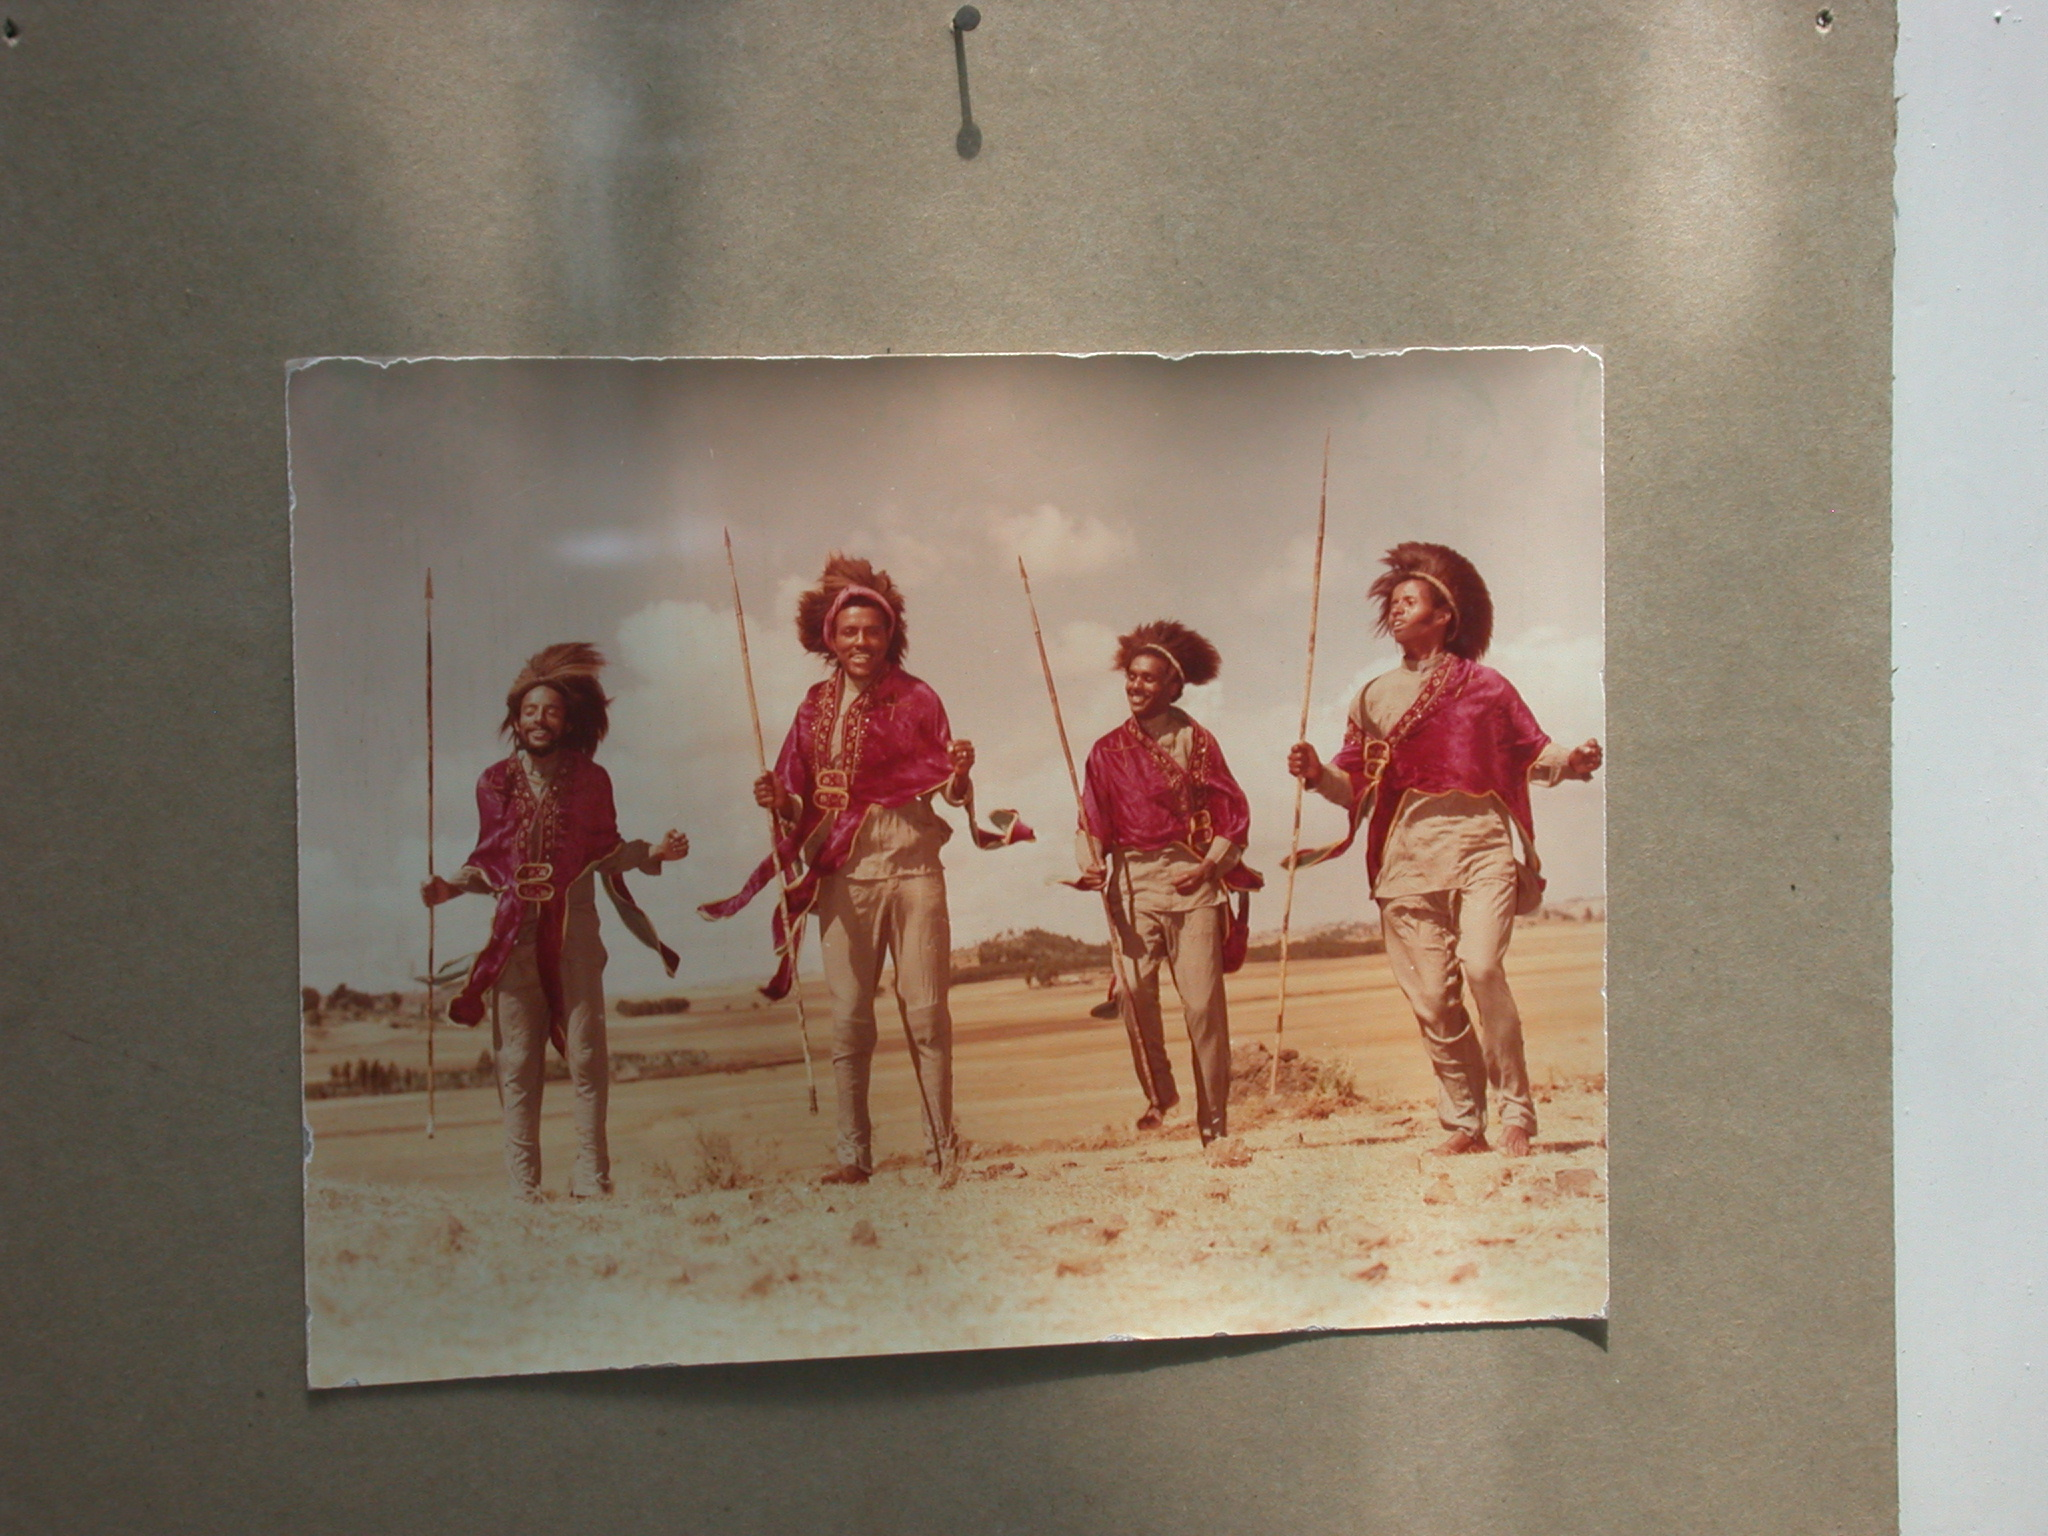 Photo of Ethiopian Tribe Members, National Museum, Addis Ababa, Ethiopia